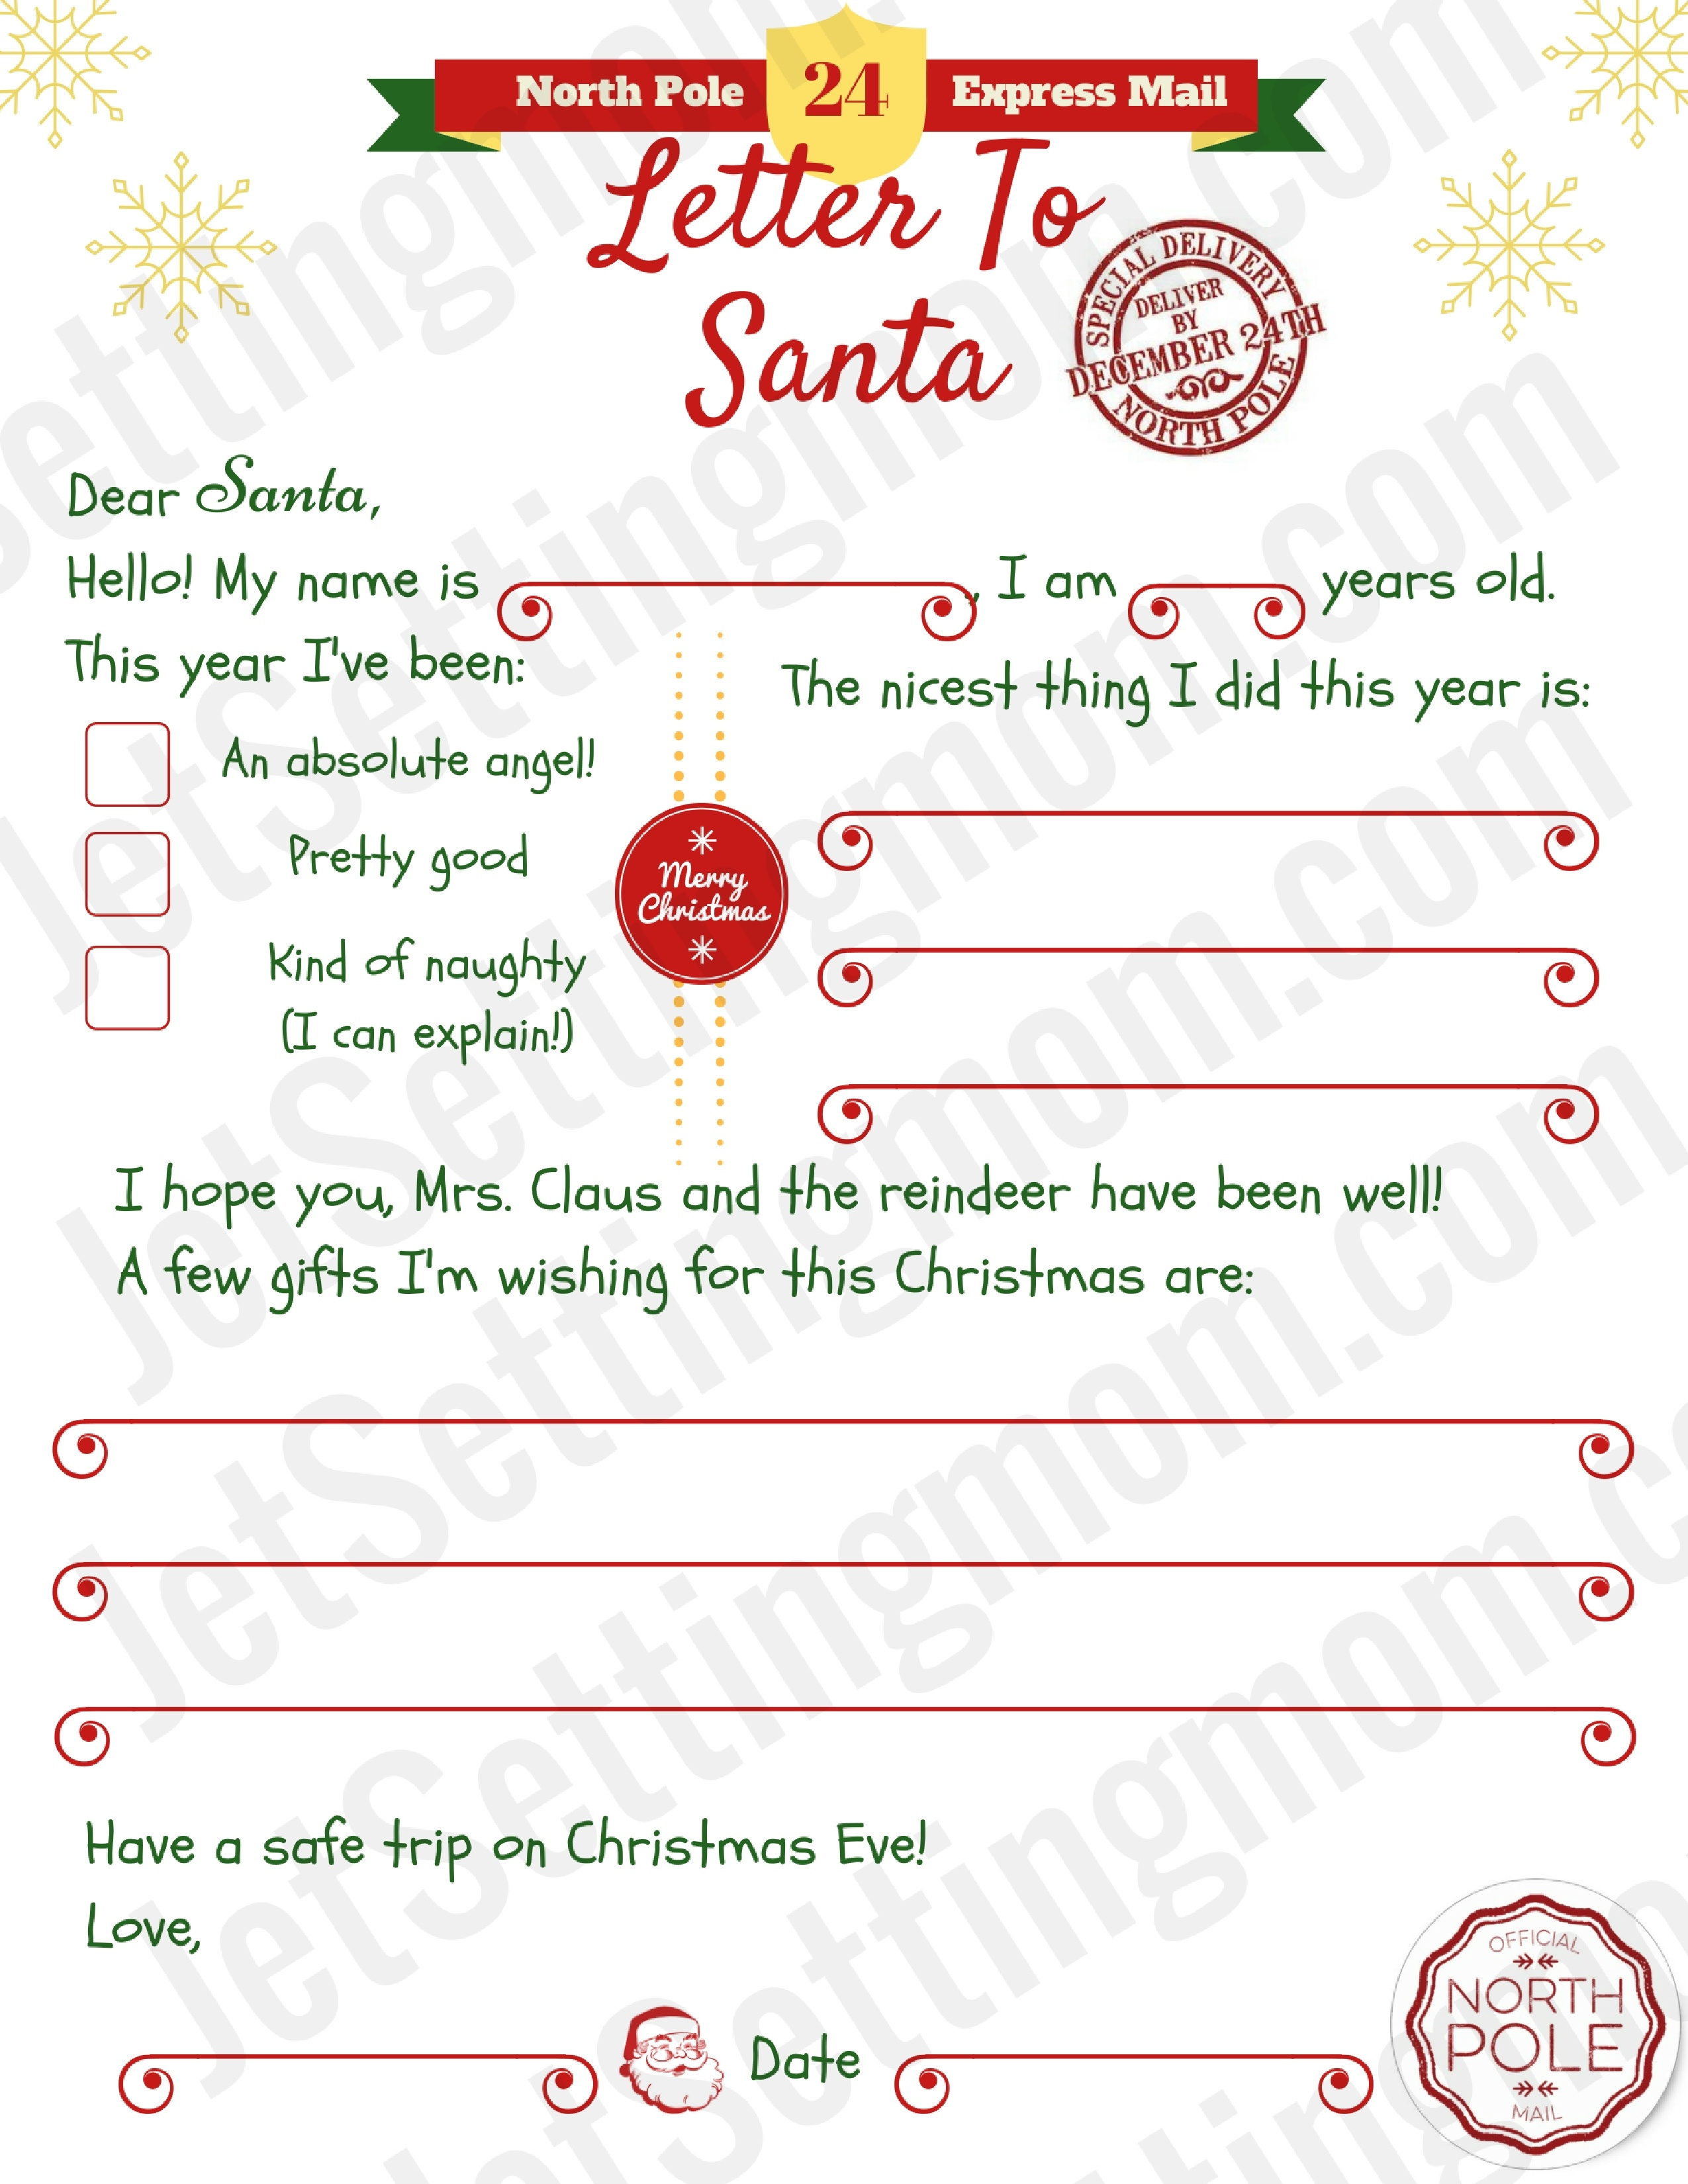 Free Printable Letter To Santa Template - Writing To Santa Made Easy! - Free Printable Letters From Santa